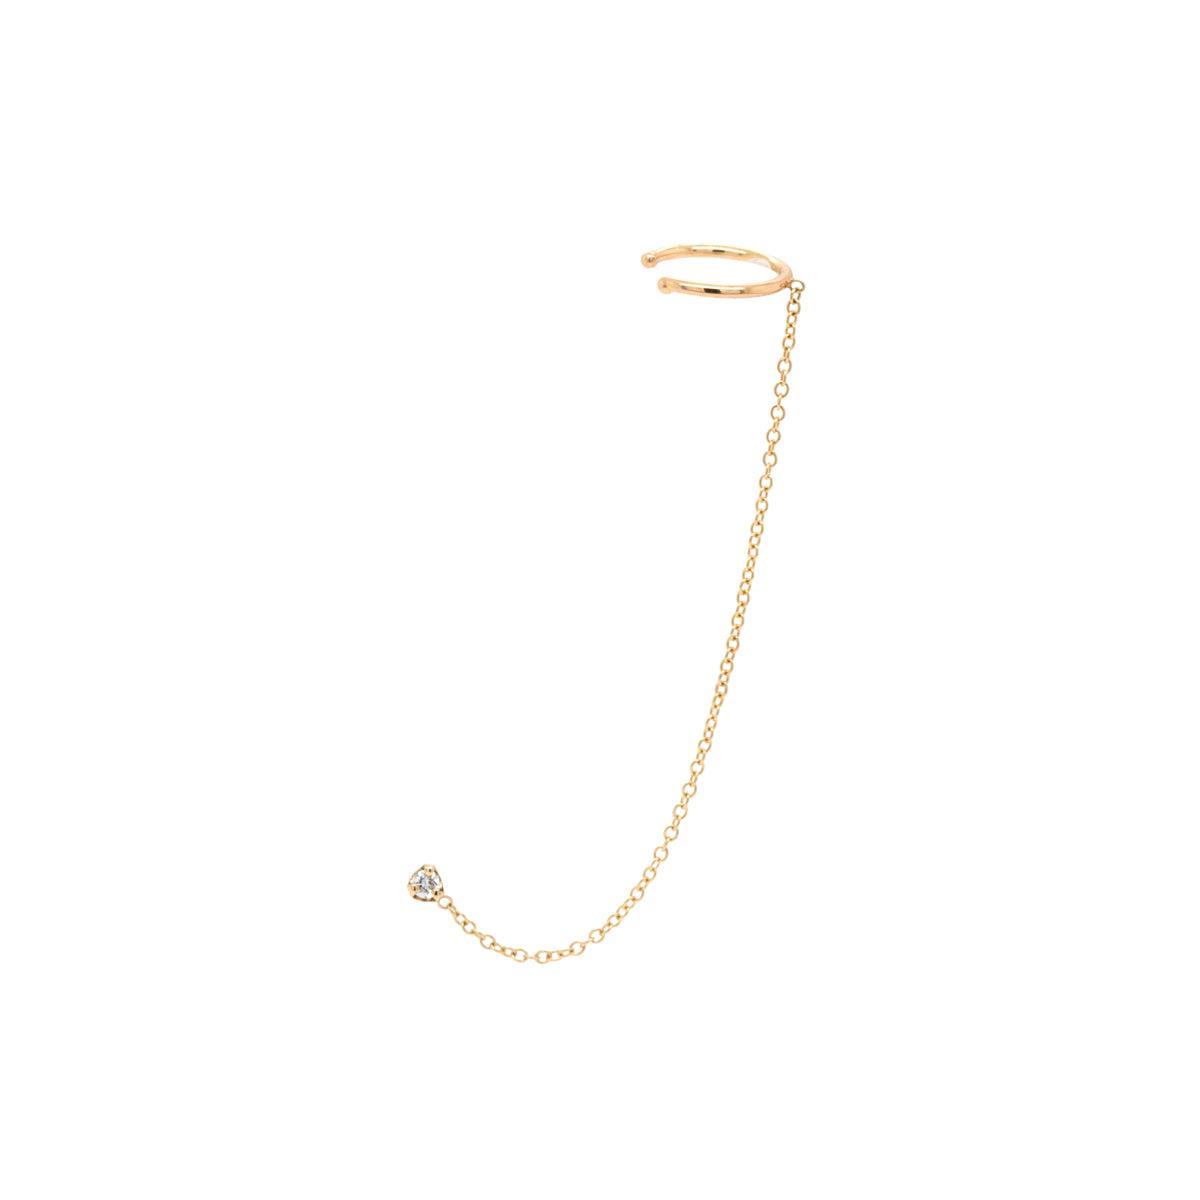 14k prong diamond chain ear cuff